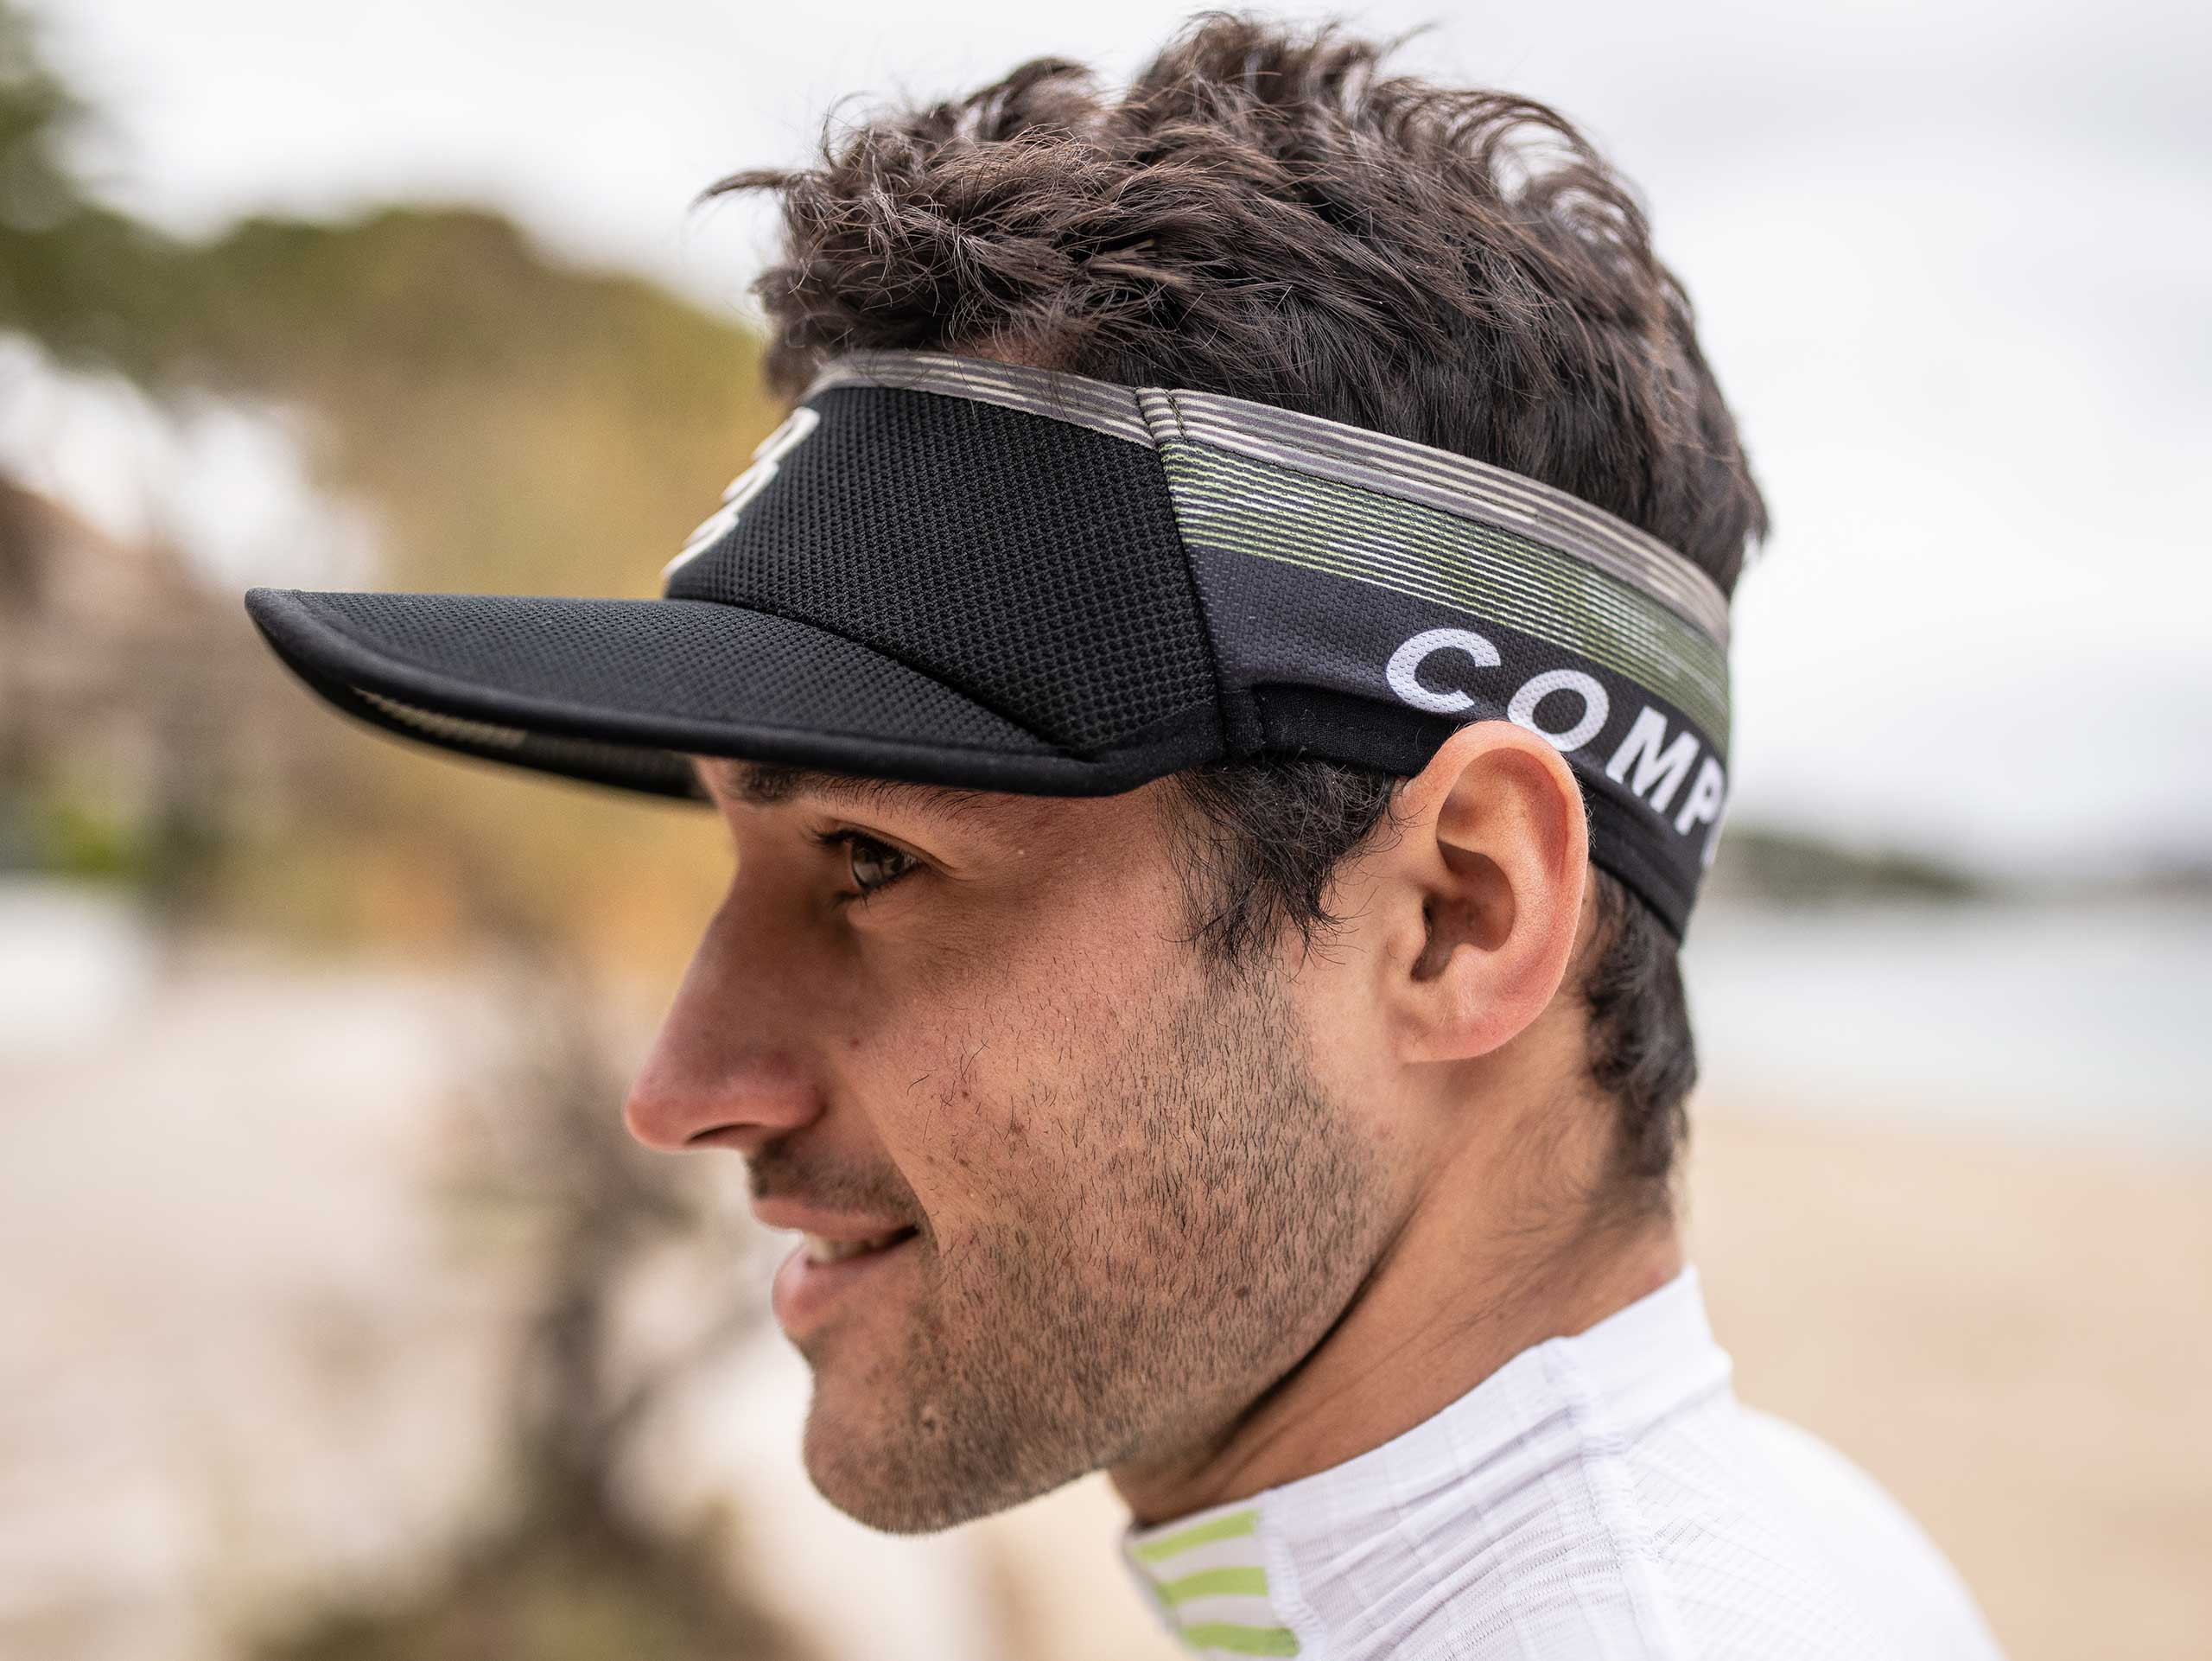 Visor Ultralight noir/camo